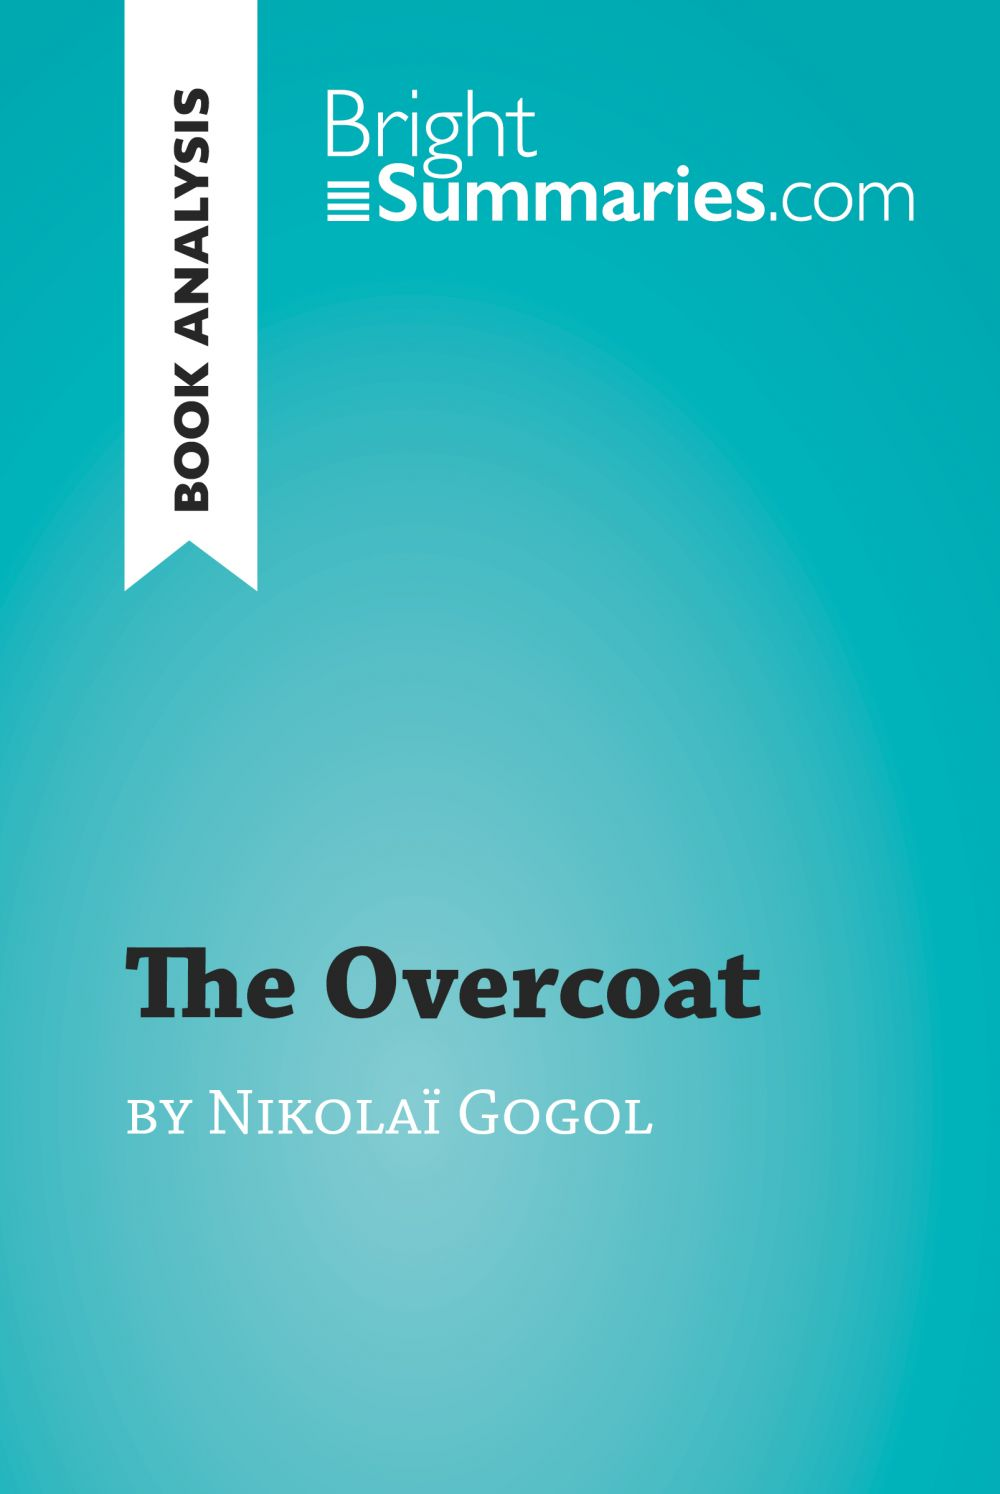 The Overcoat by Nikolai Gogol (Book Analysis)